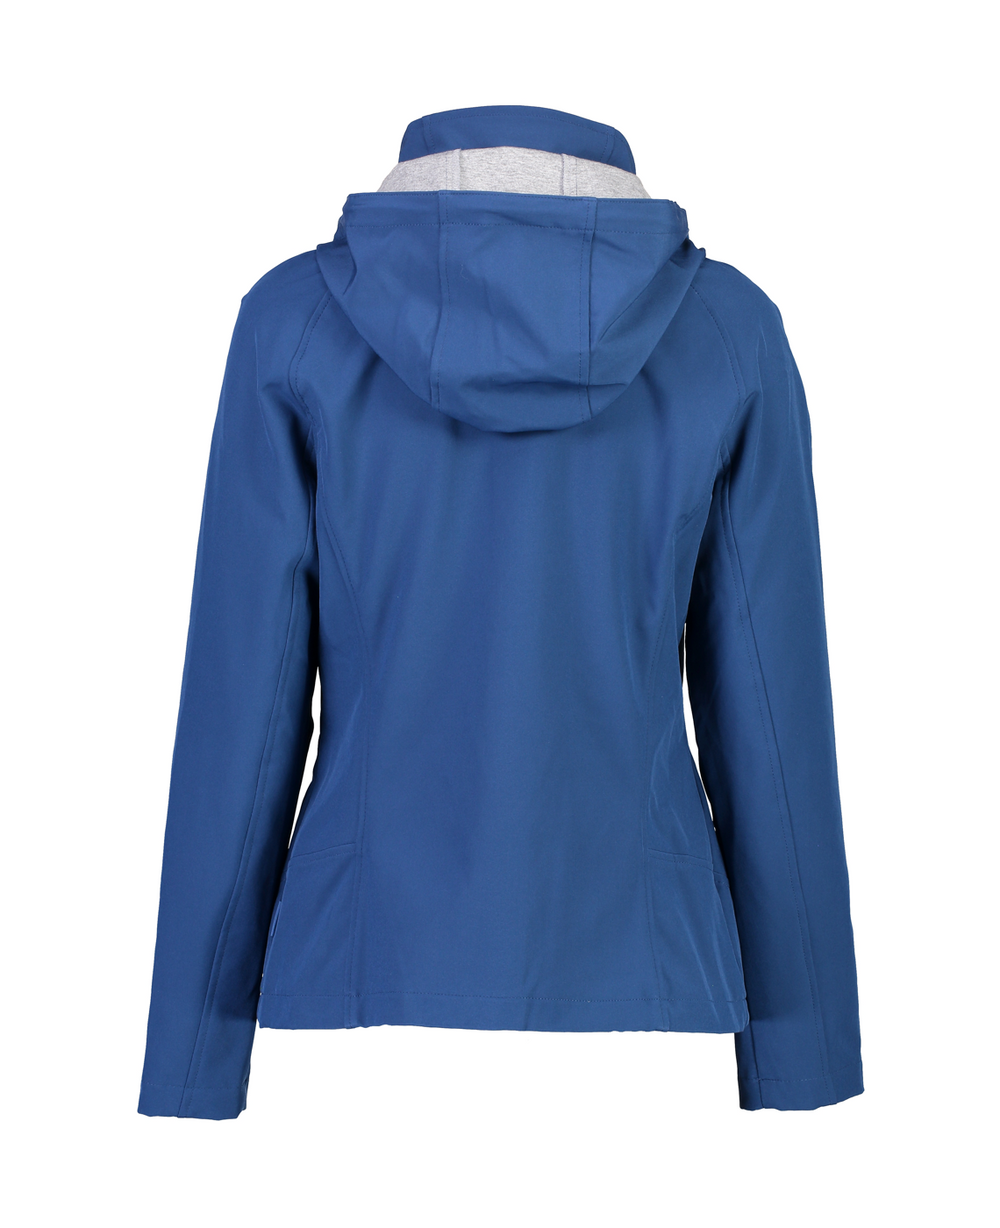 FERN SOFTSHELL JACKET - PETROL BLUE